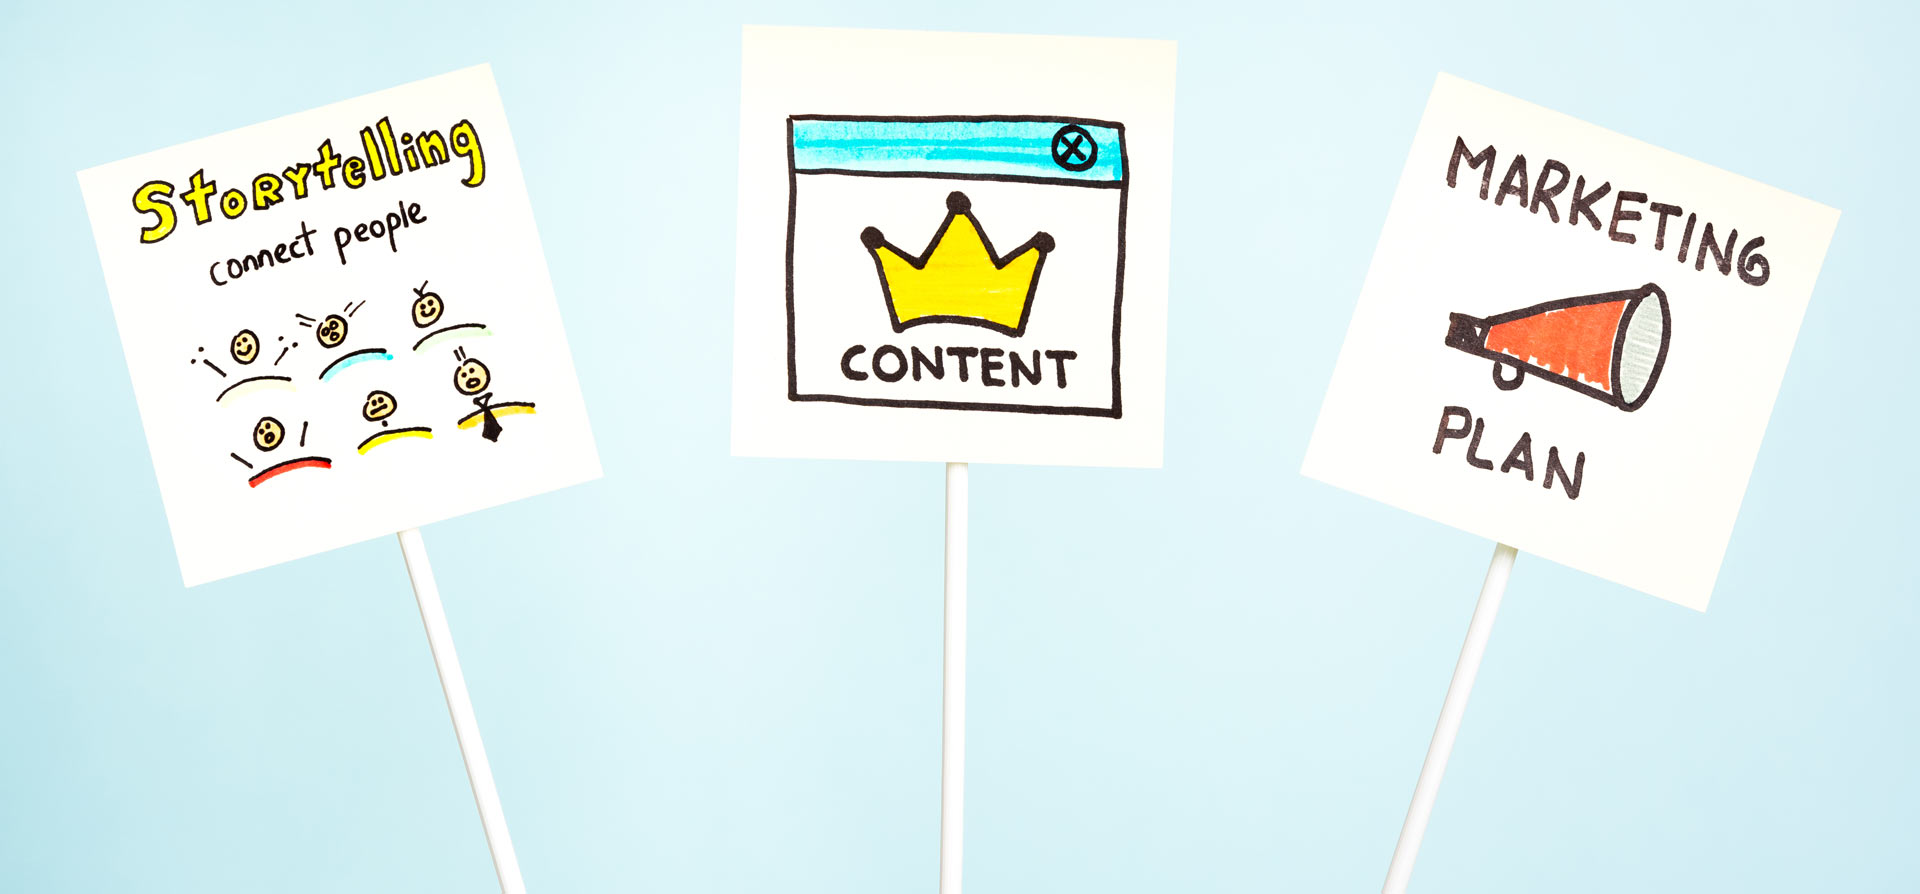 storytelling content marketing